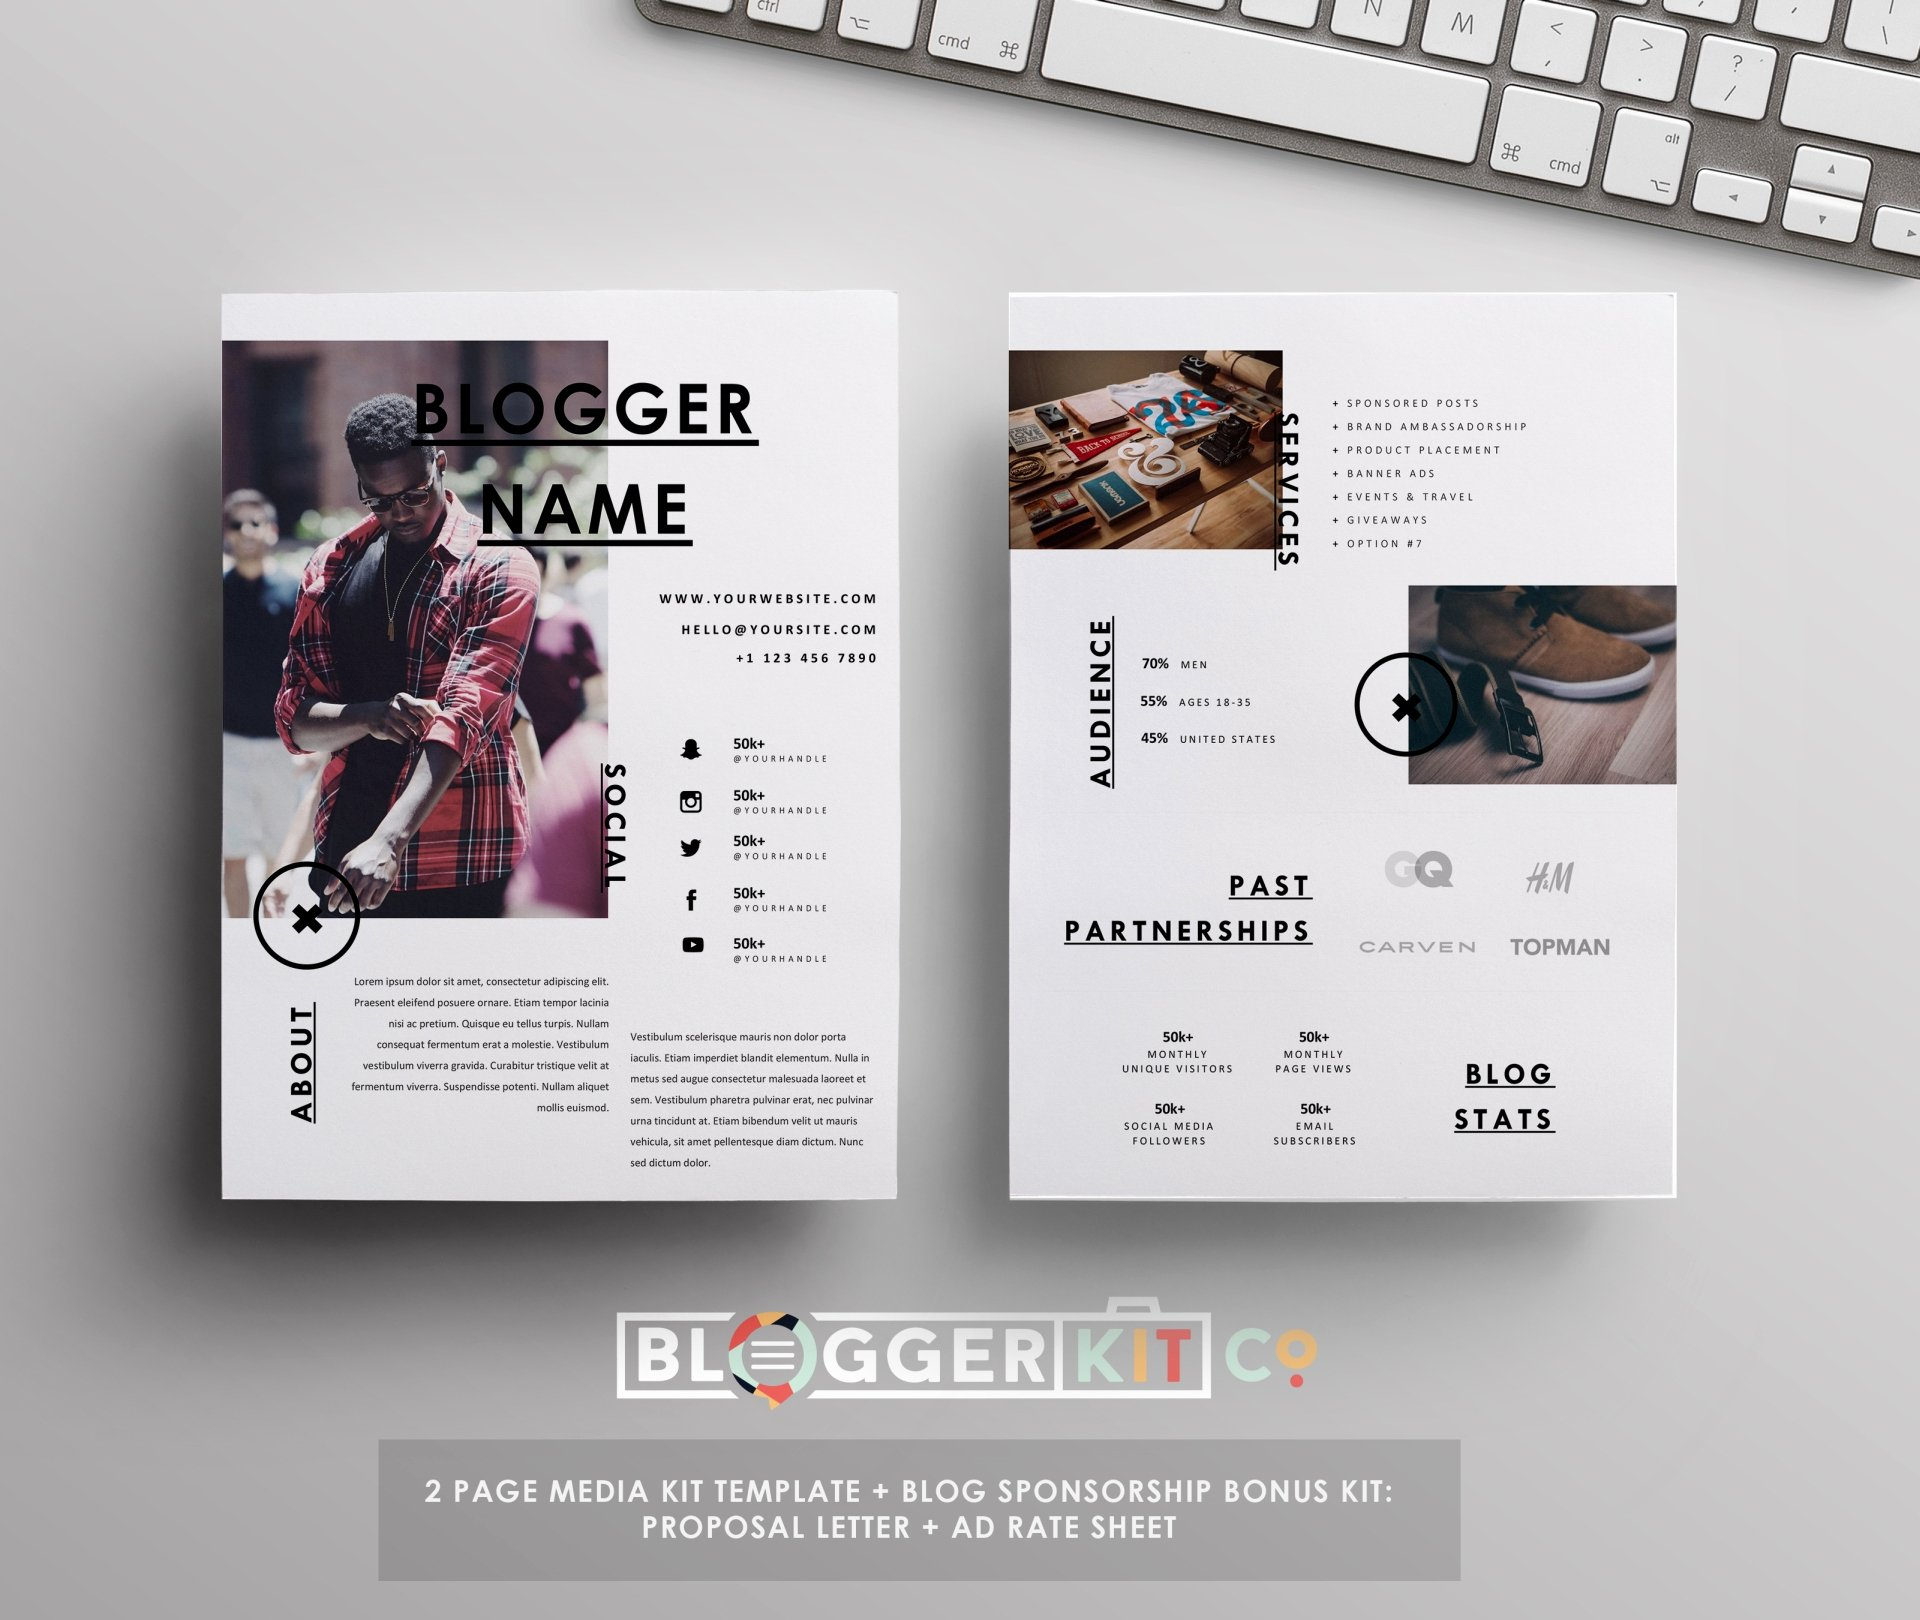 Free Press Kit Template Awesome Influencer Media Kit Template Ad Rate Sheet Blog